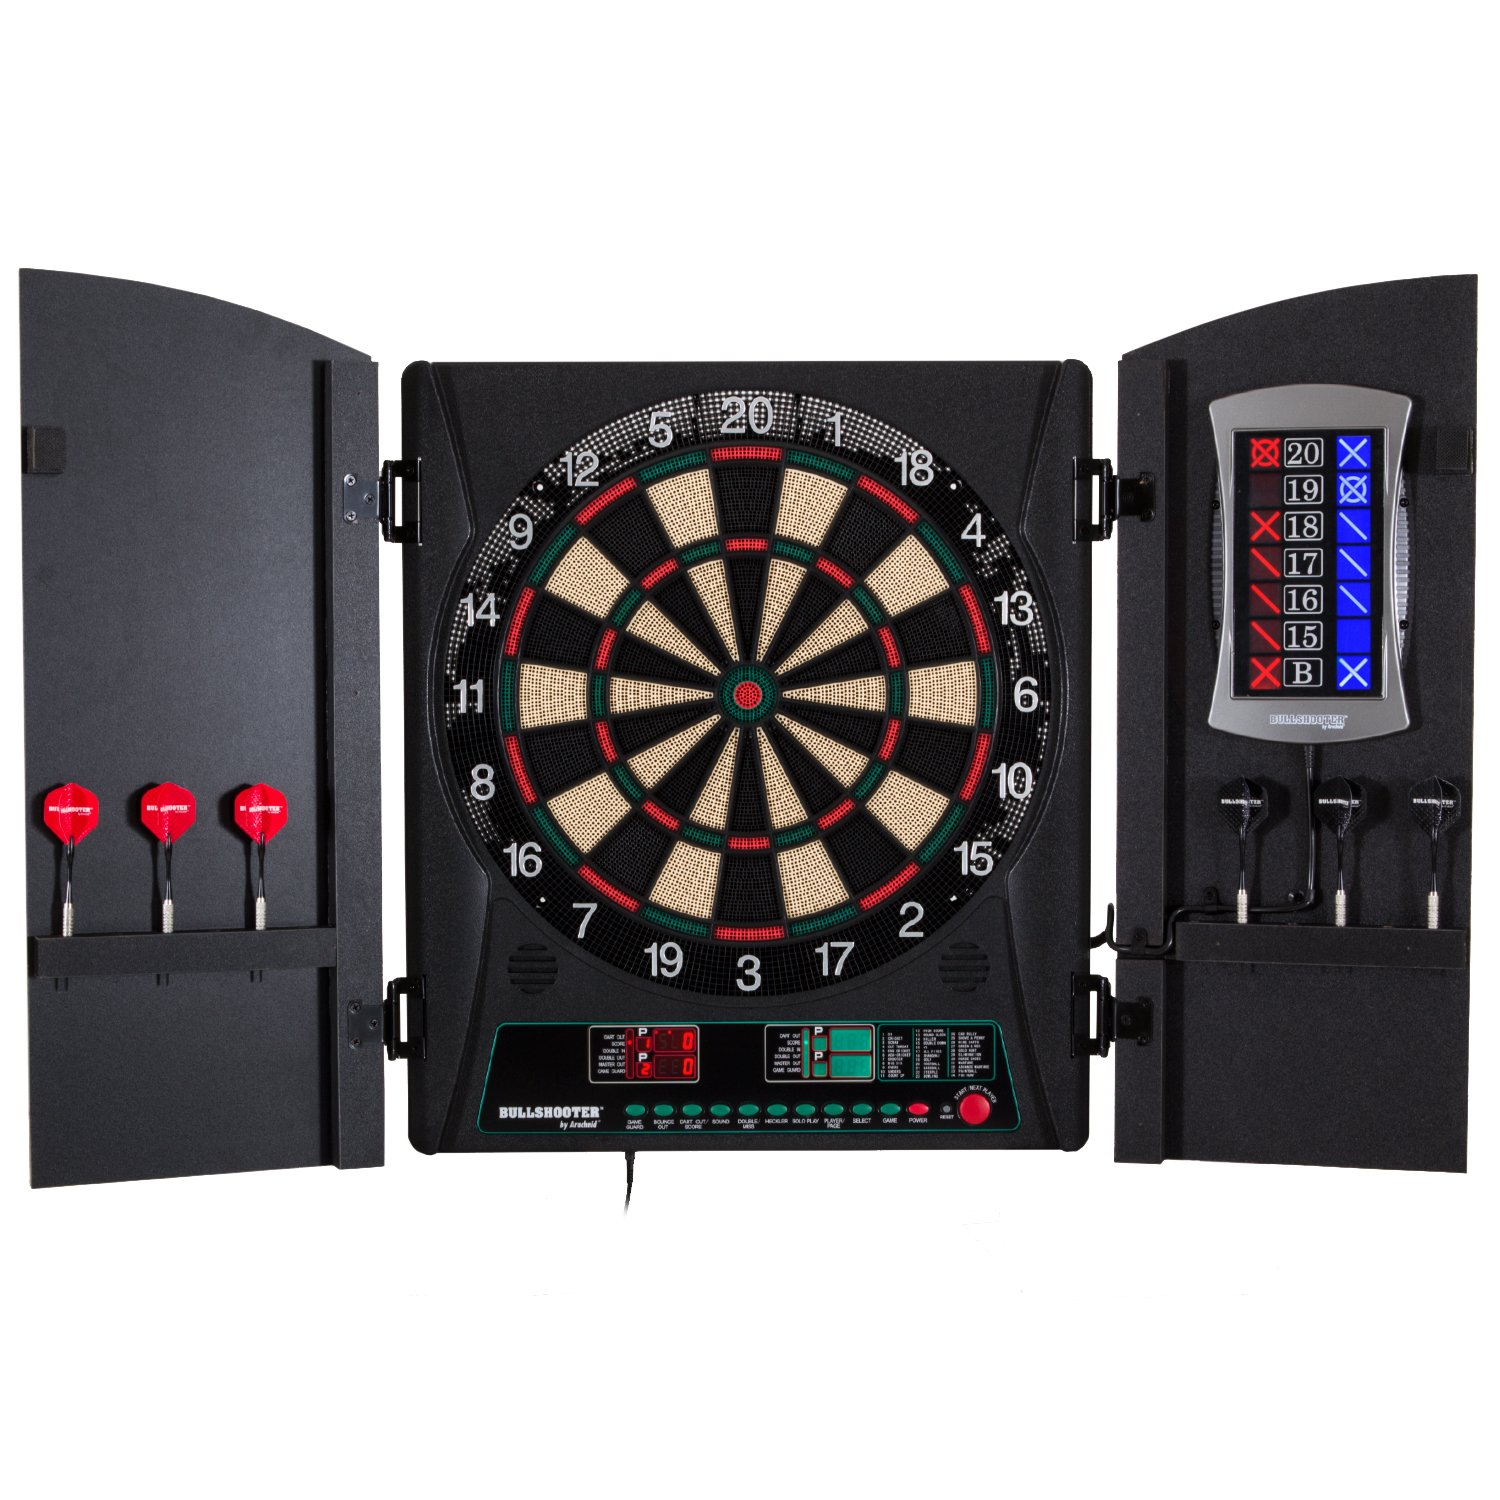 Bullshooter Cricket Electronic Dartboard Variations